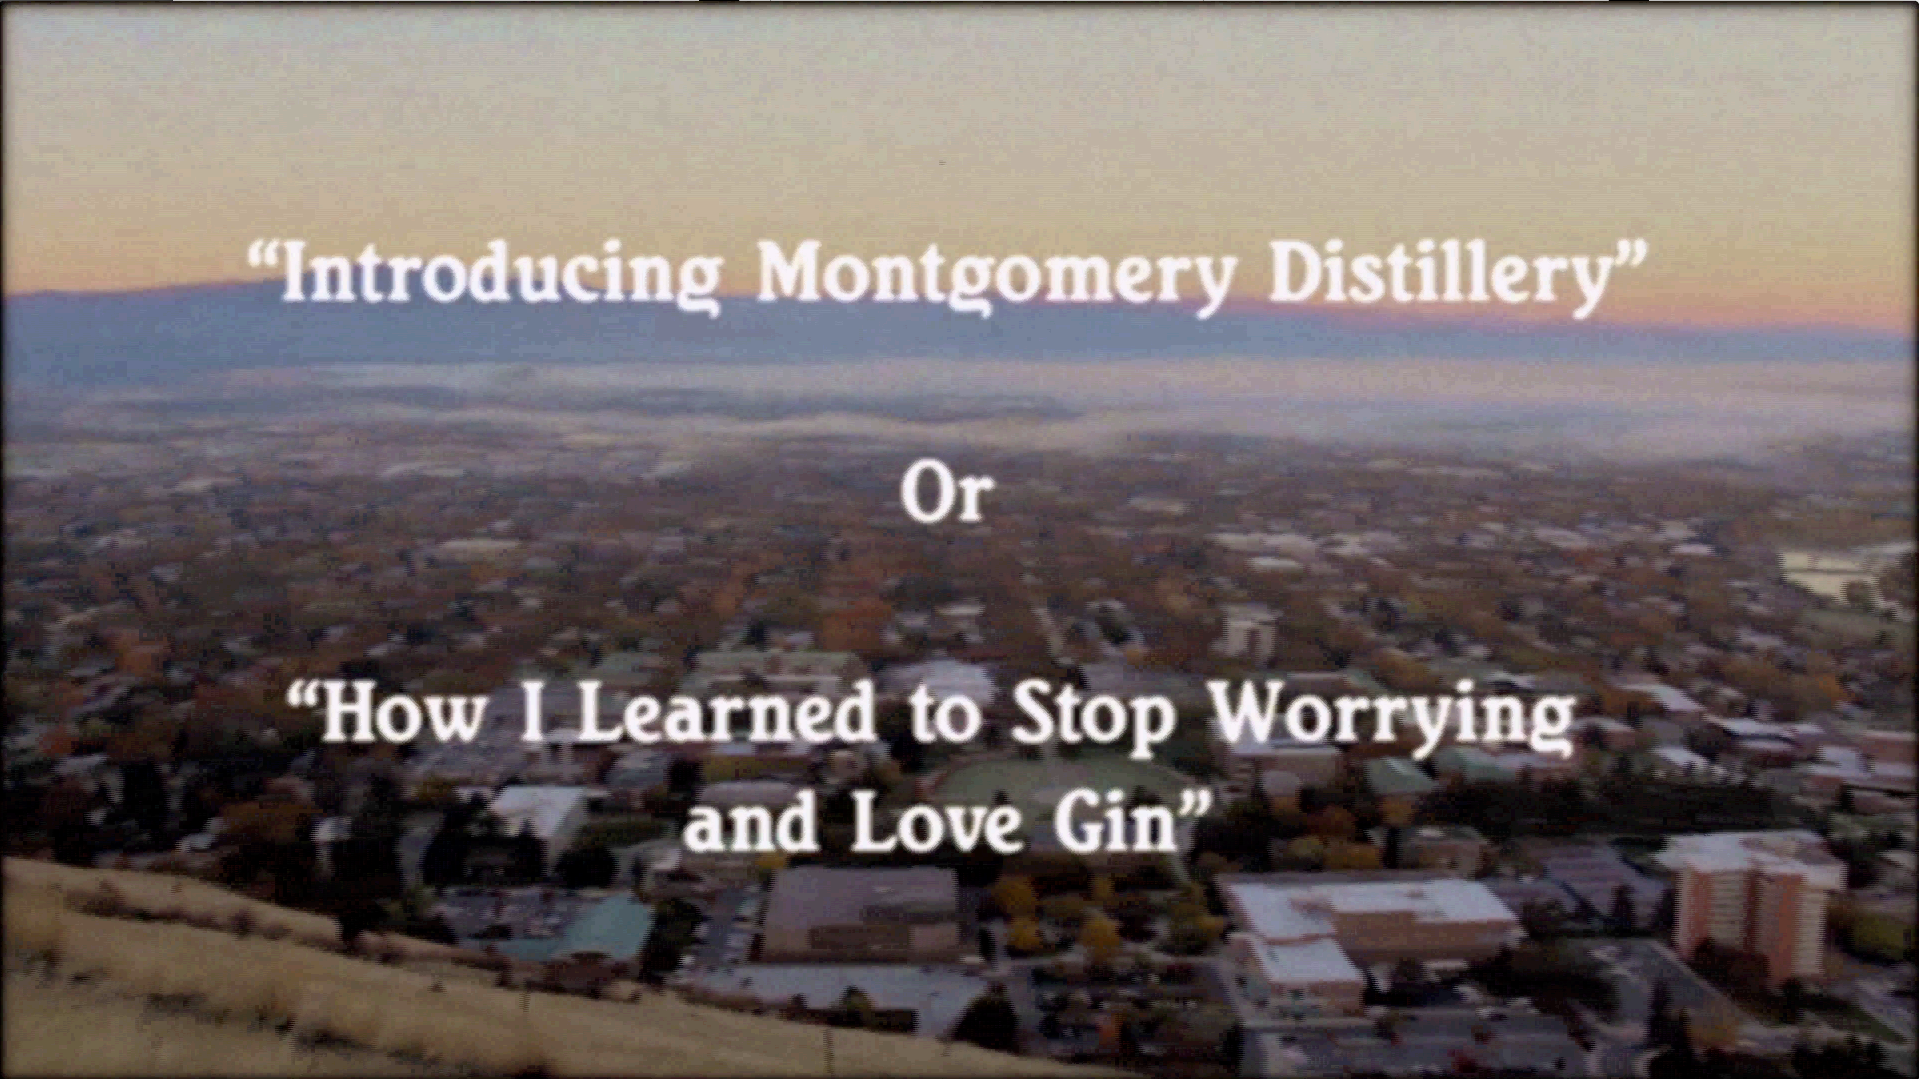 How I Learned to Stop Worrying and Love Gin